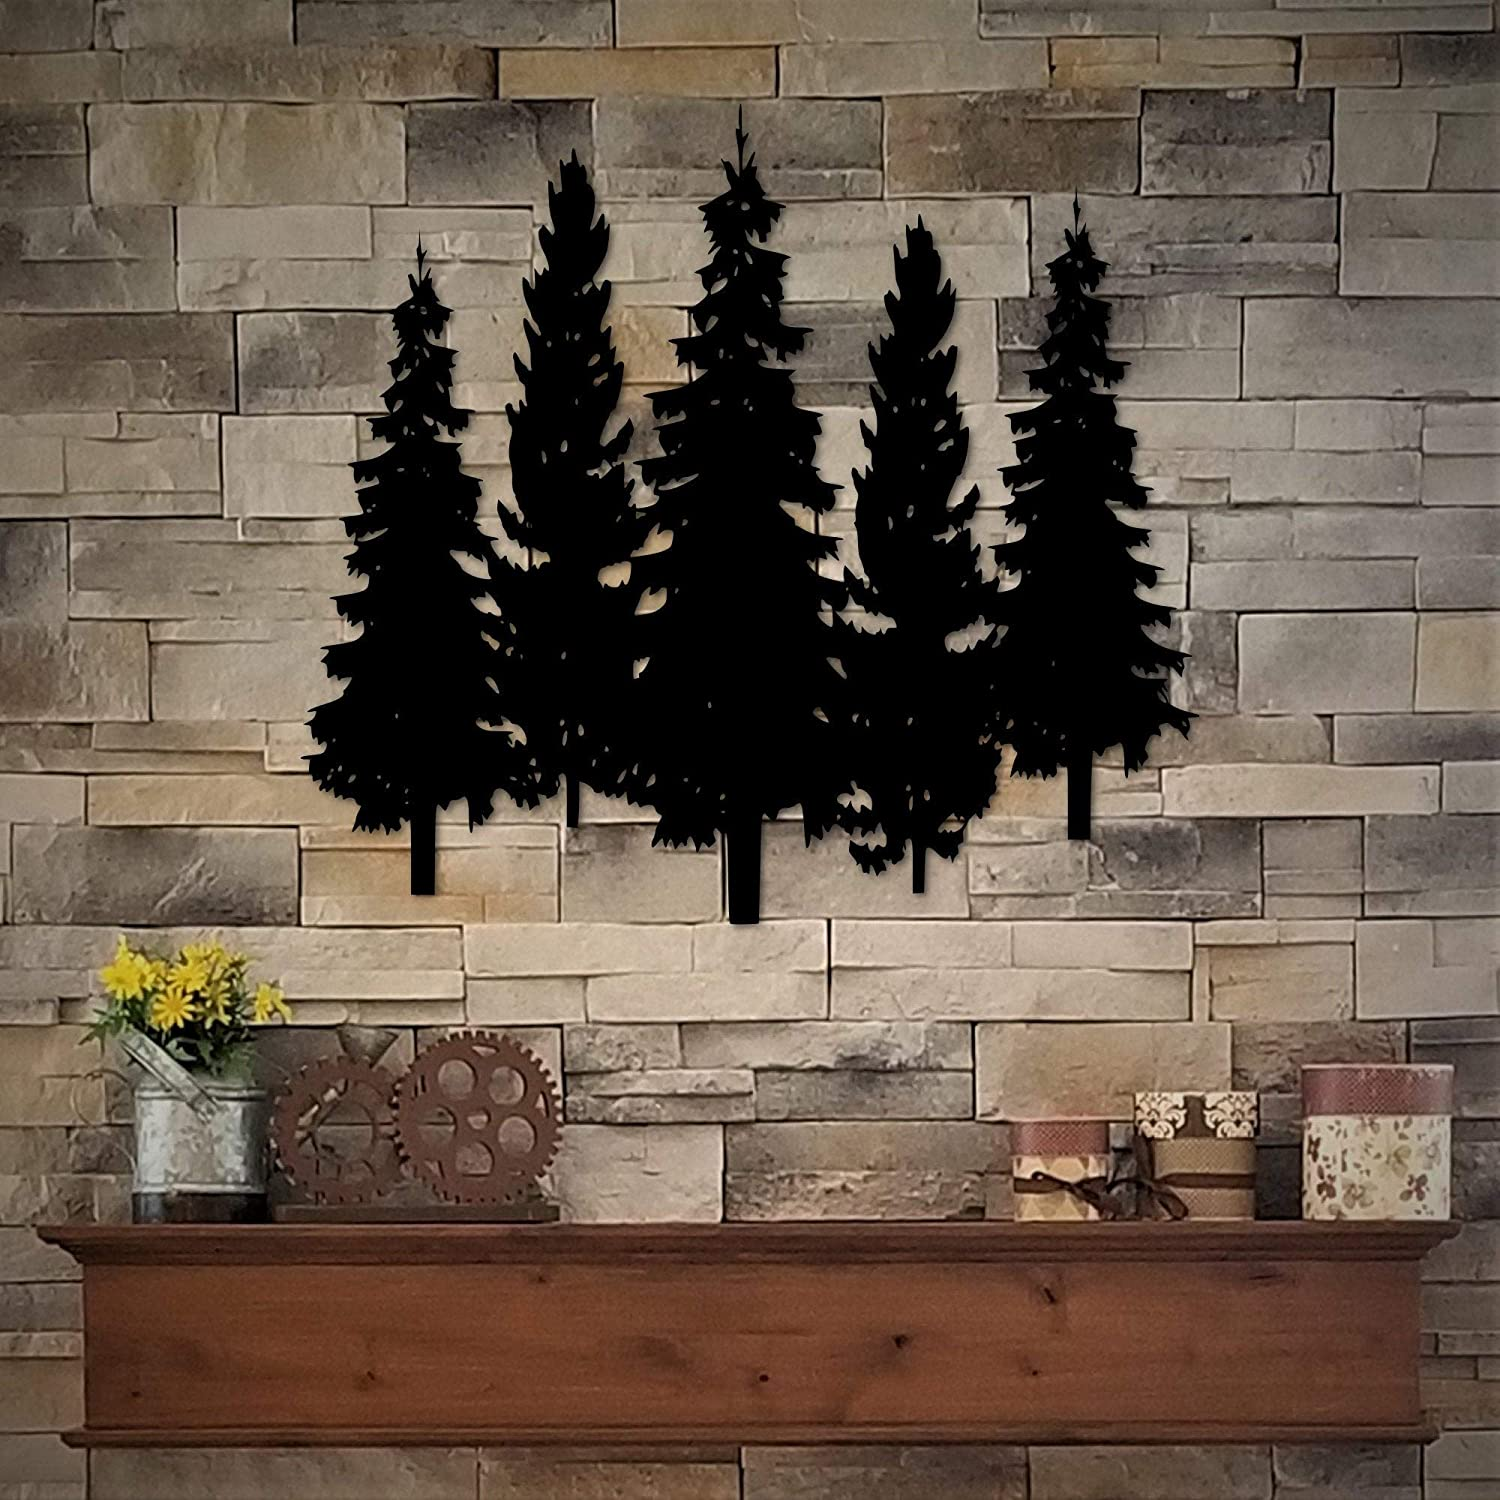 DKISEE Metal Pine Trees - Group of 5 Pine Trees Metal Wall Art - Rustic Decor for Home - Cabin Decor - Bathroom Wall Decor - Office Wall Hanging - 14 Inch Black Metal Wall Art - SRD720